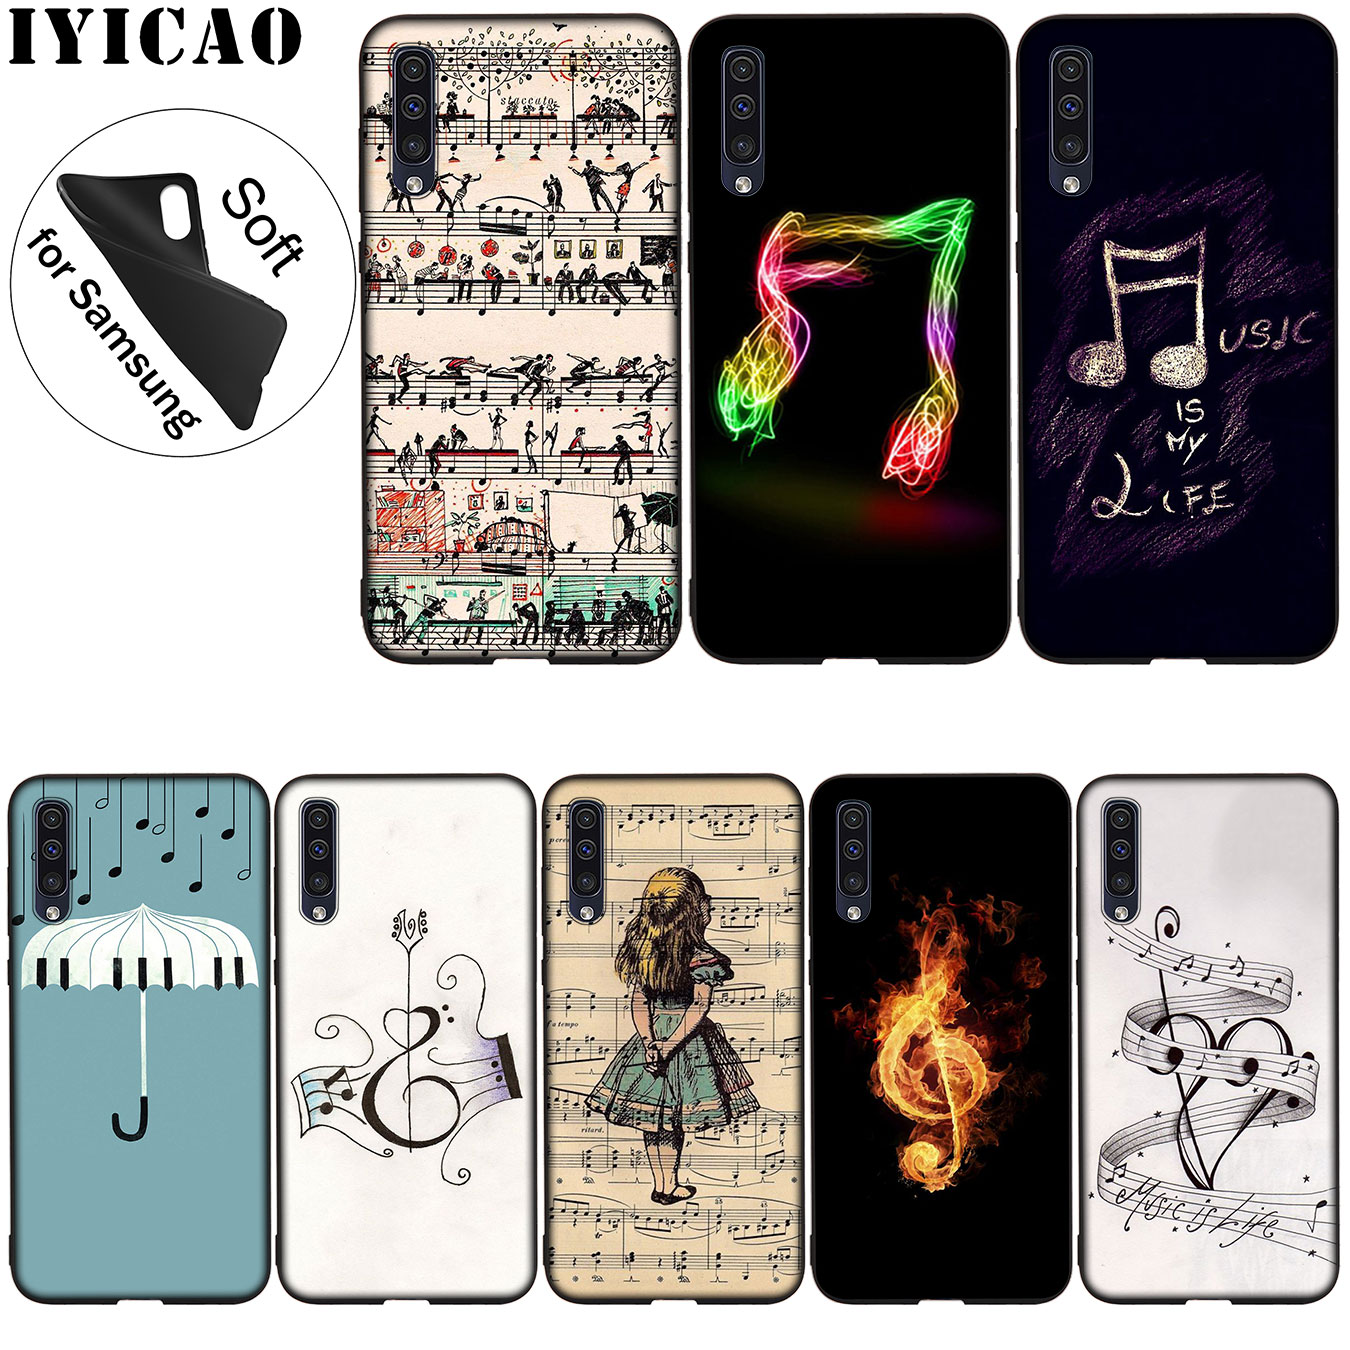 Fitted Cases Phone Bags & Cases New Fashion Yimaoc Biohazard Umbrella Corps Silicone Case For Samsung Galaxy A7 A8 A9 A10 A30 A40 A50 A70 M10 M20 M30 S10e J6 Plus 2018